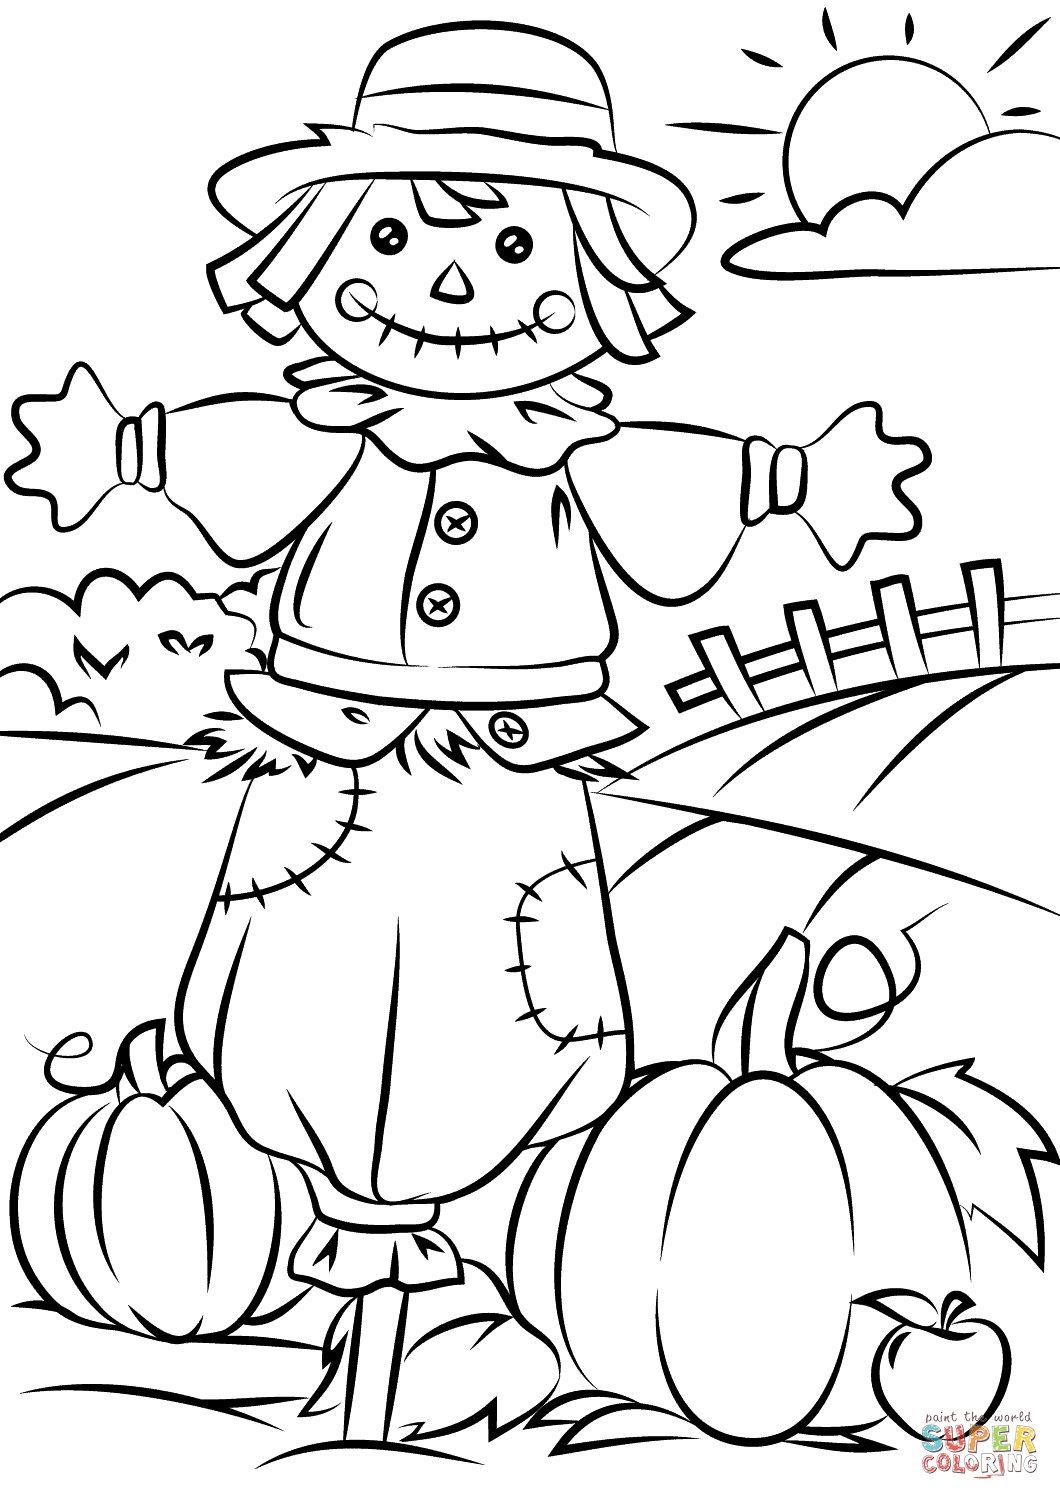 Free Little Scarecrow 2 Bearywishes Blogspot Com Jpg 794 1 024 Pixels Scarecrow Coloring Pages Free Printable Fall Coloring Pages Halloween Coloring Pages